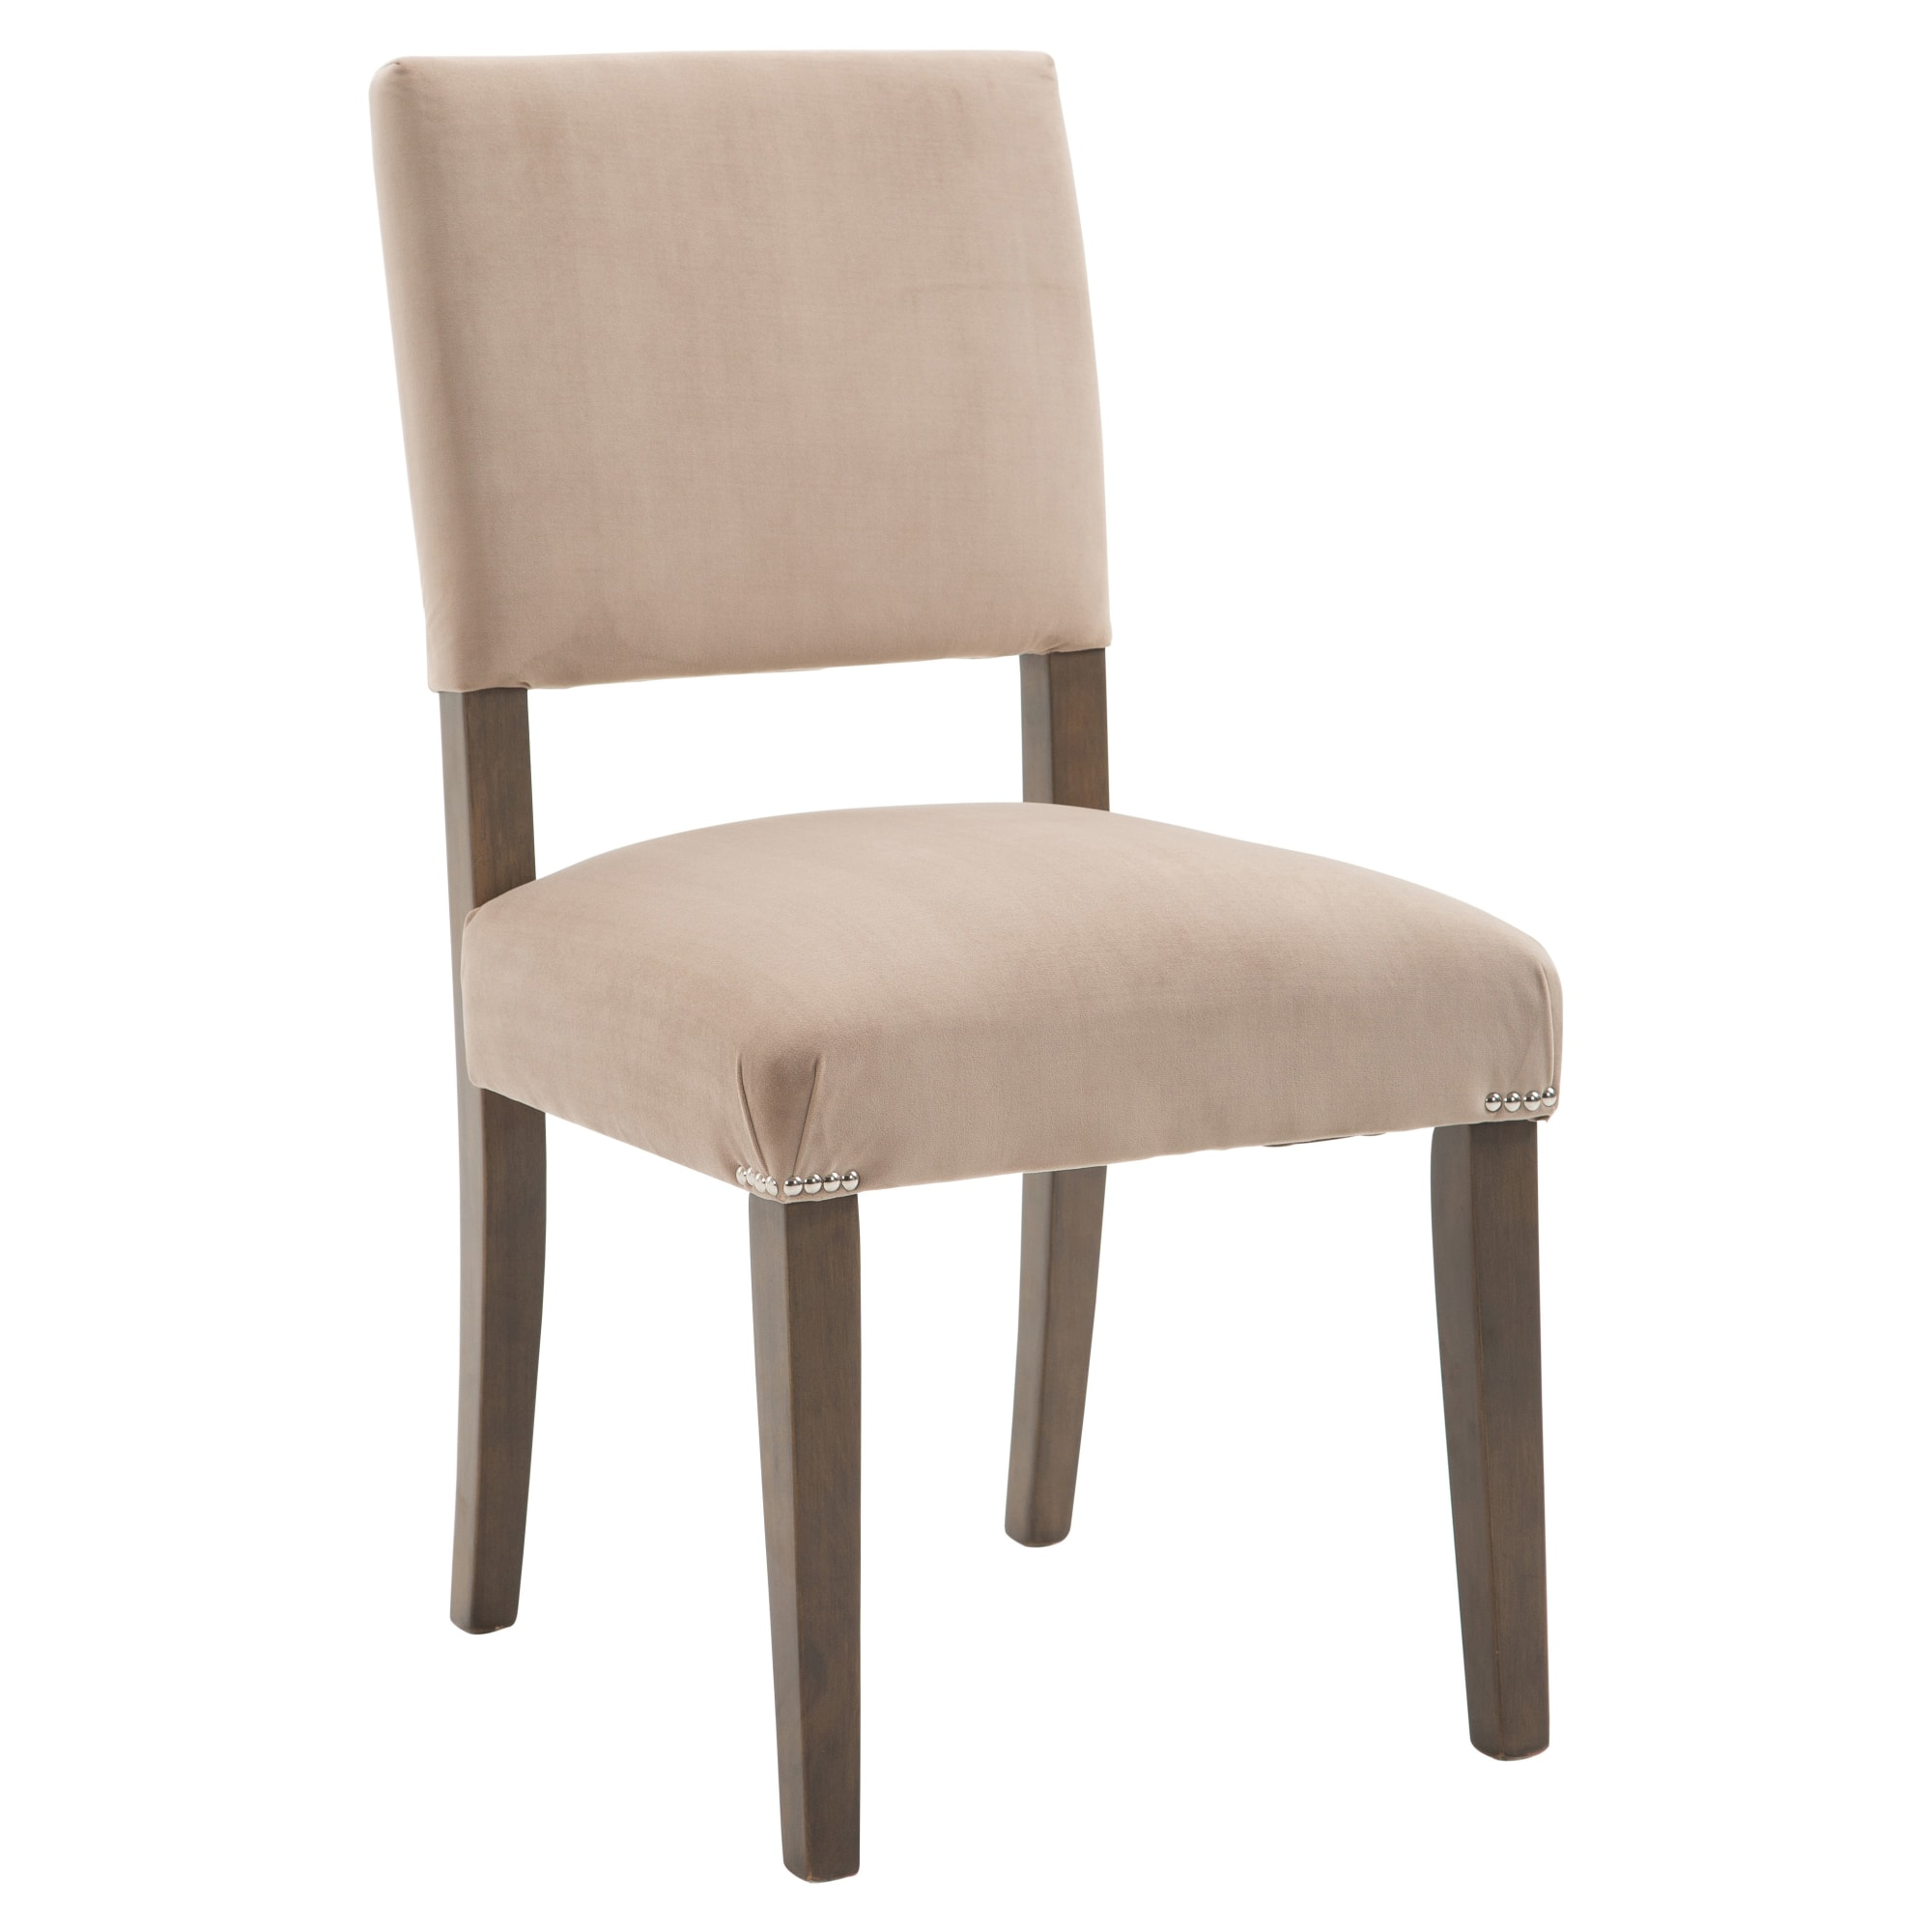 Pino Upholstered Chair